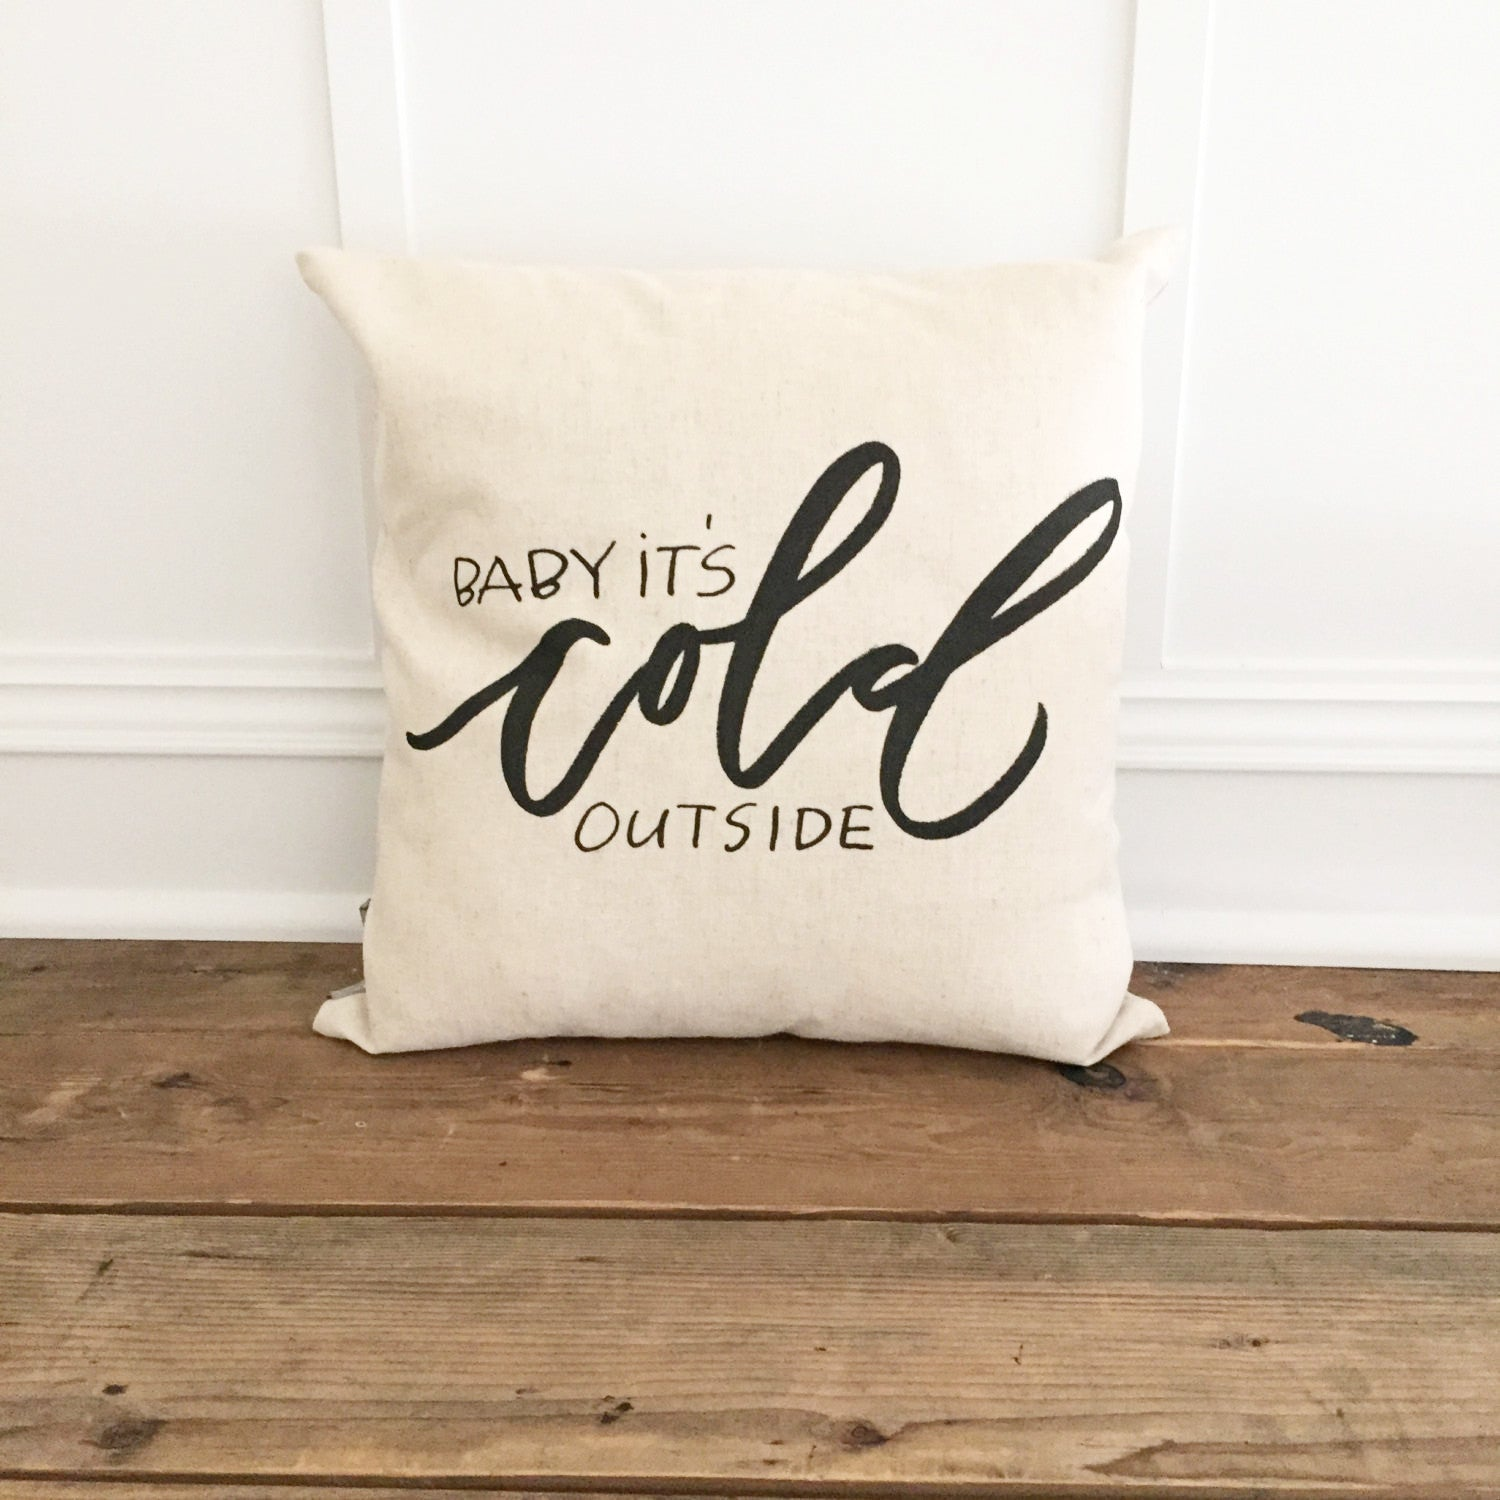 Baby It's Cold Outside (Design 1) Pillow Cover - Linen and Ivory